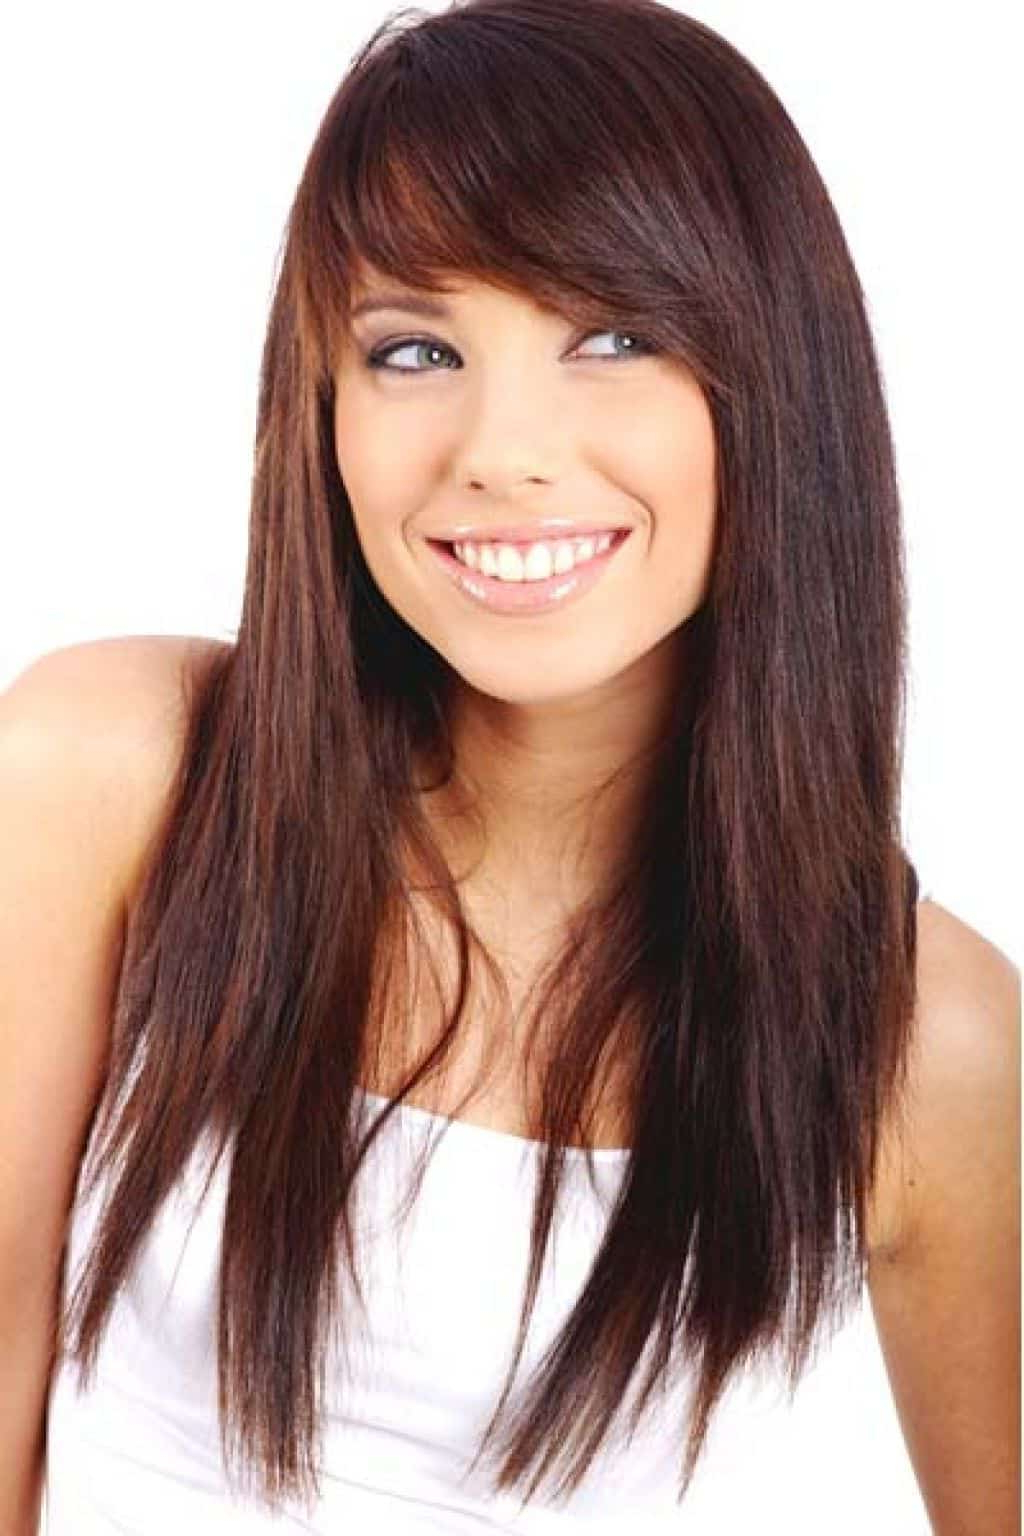 10 Alluring Side Bangs On Long Hair 2018 – Hairstylecamp Regarding Short Haircuts With Side Fringe (View 15 of 25)